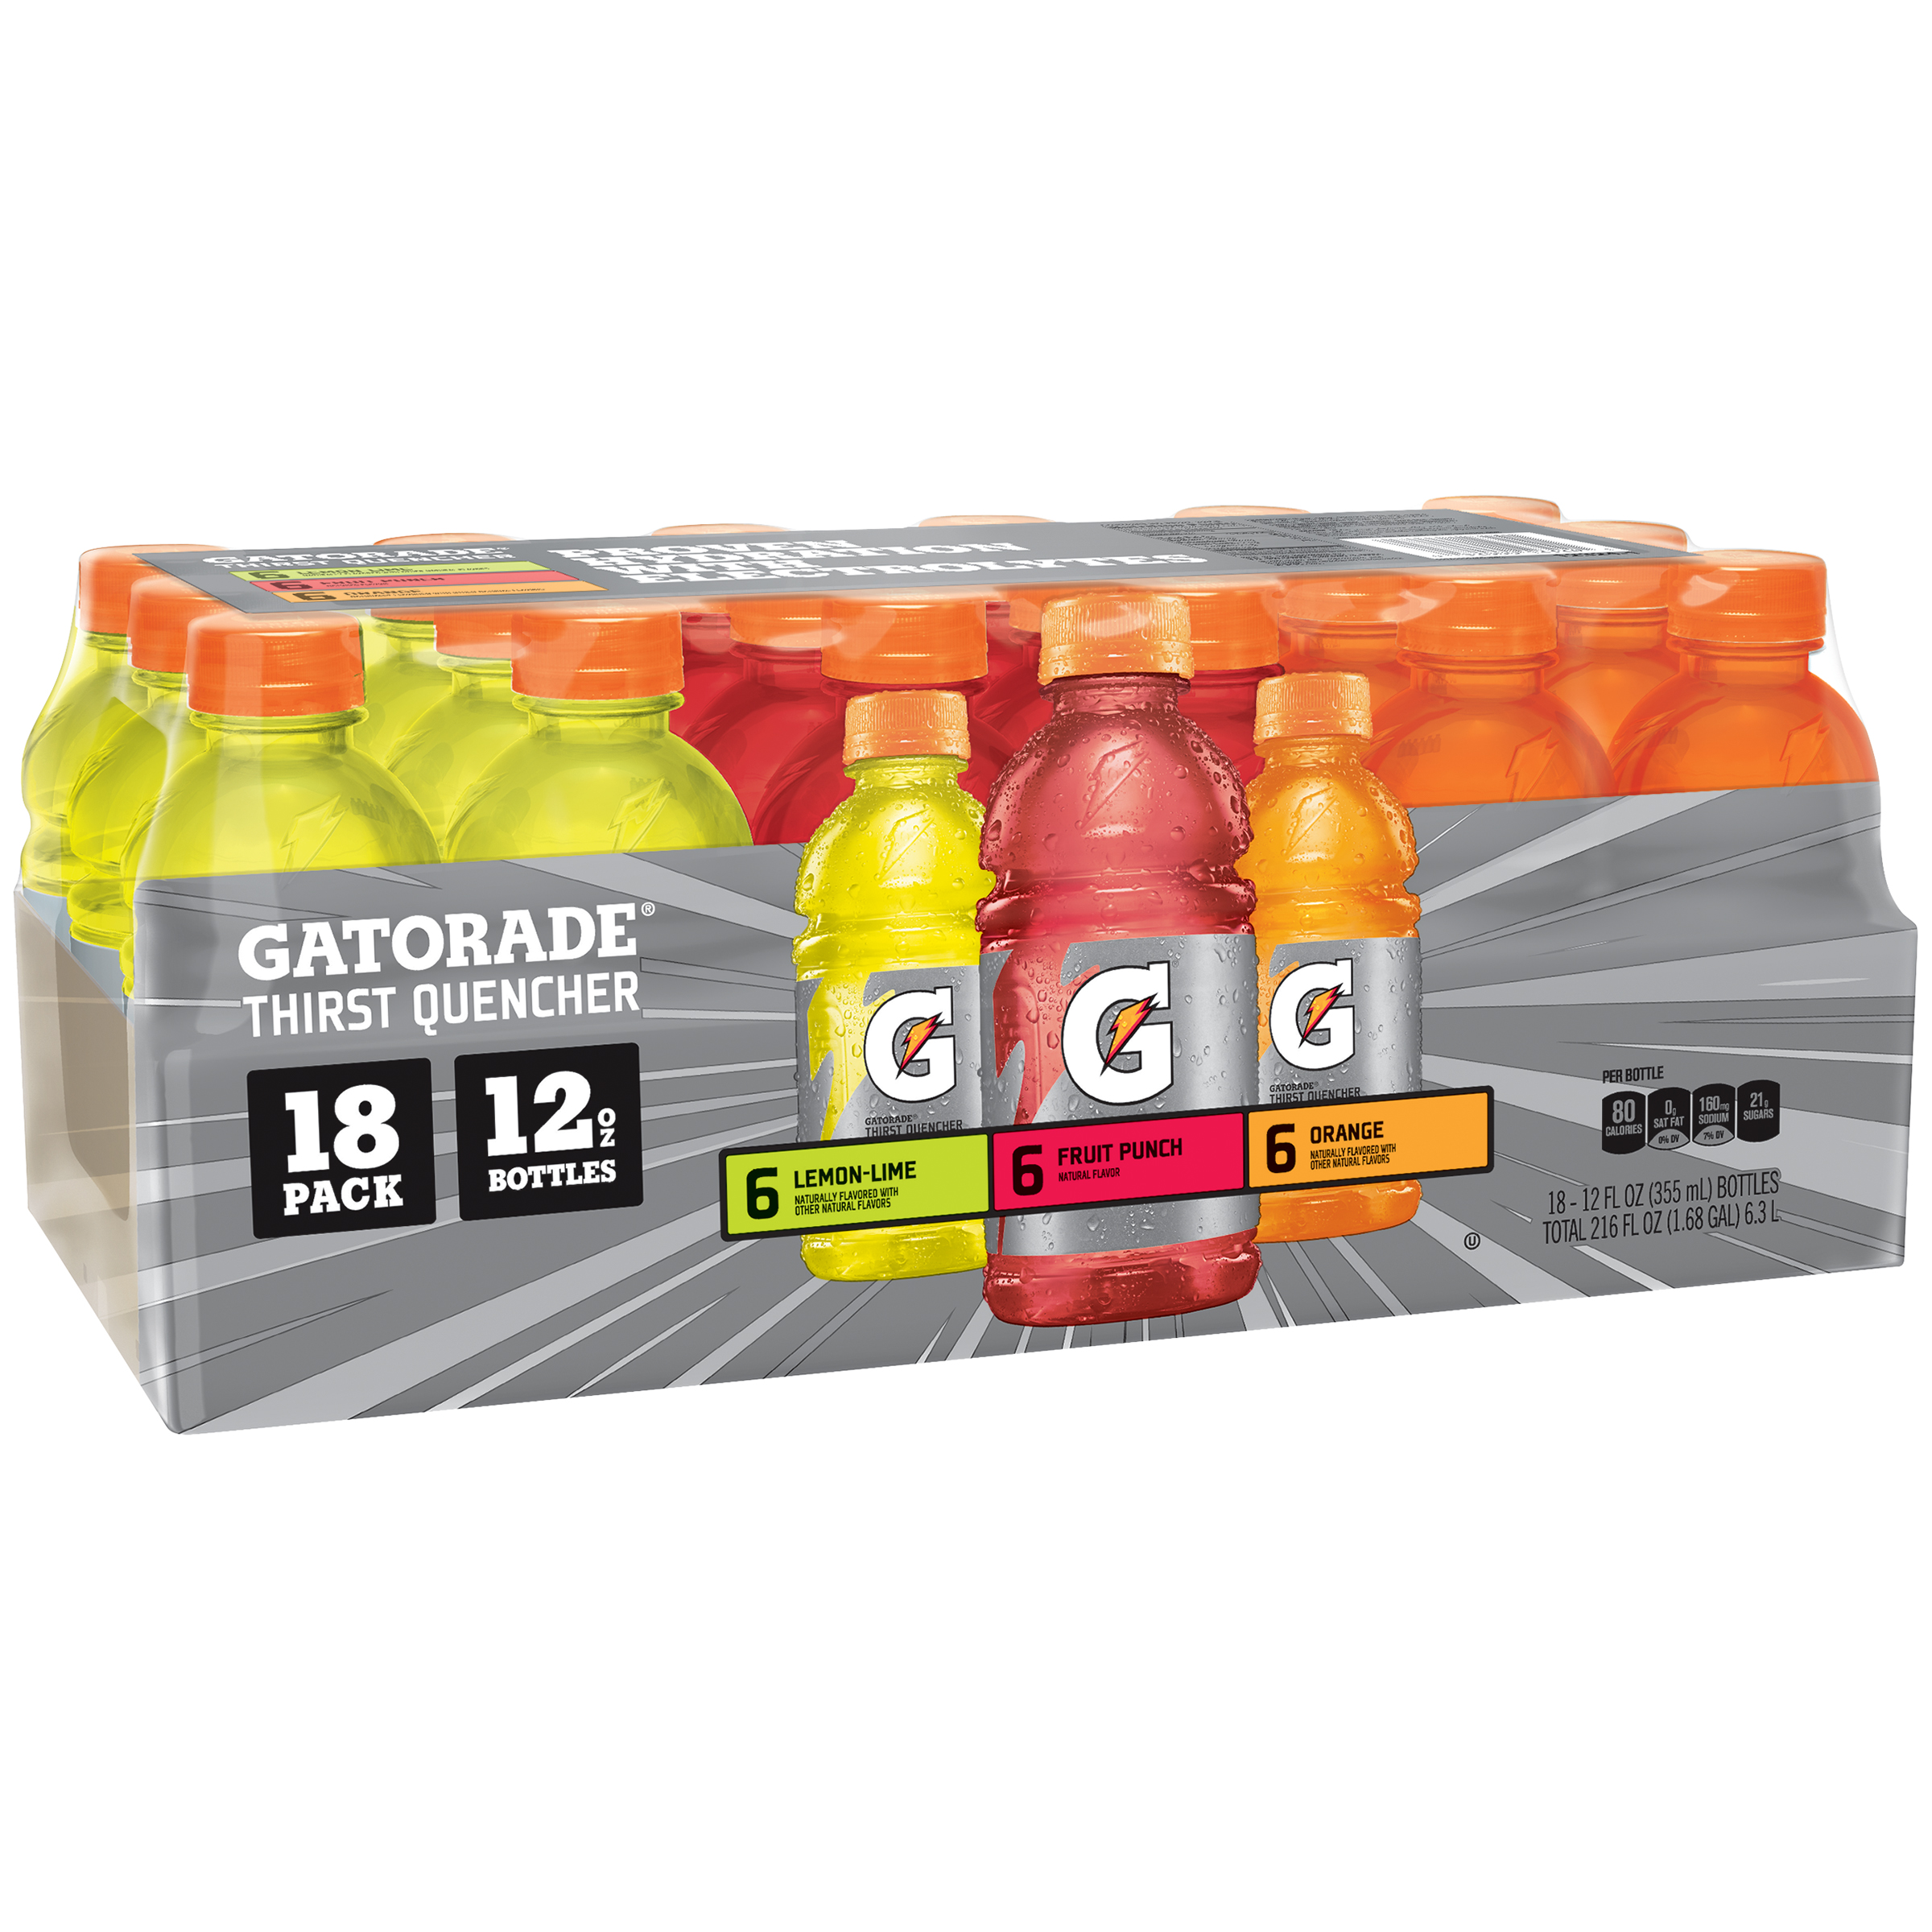 Gatorade Thirst Quencher Variety Pack, 18 Count, 12 fl. oz. Bottles